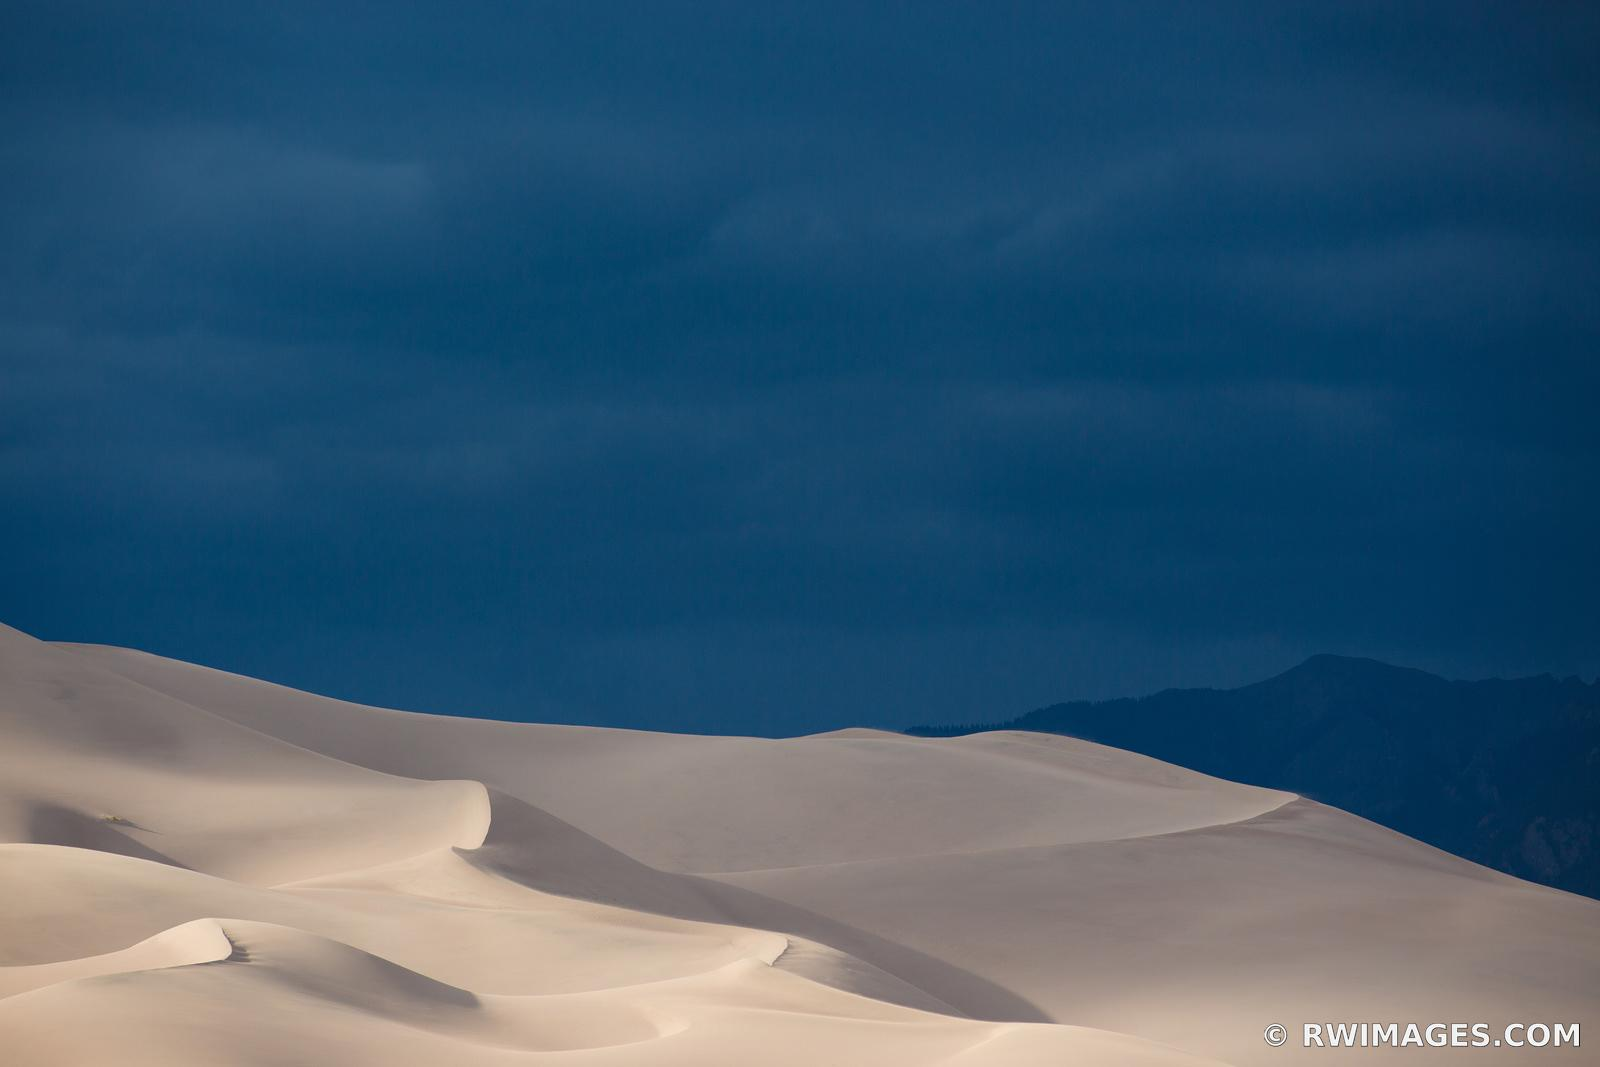 GREAT SAND DUNES NATIONAL PARK COLORADO AMERICAN SOUTHWEST DESERT LANDSCAPE